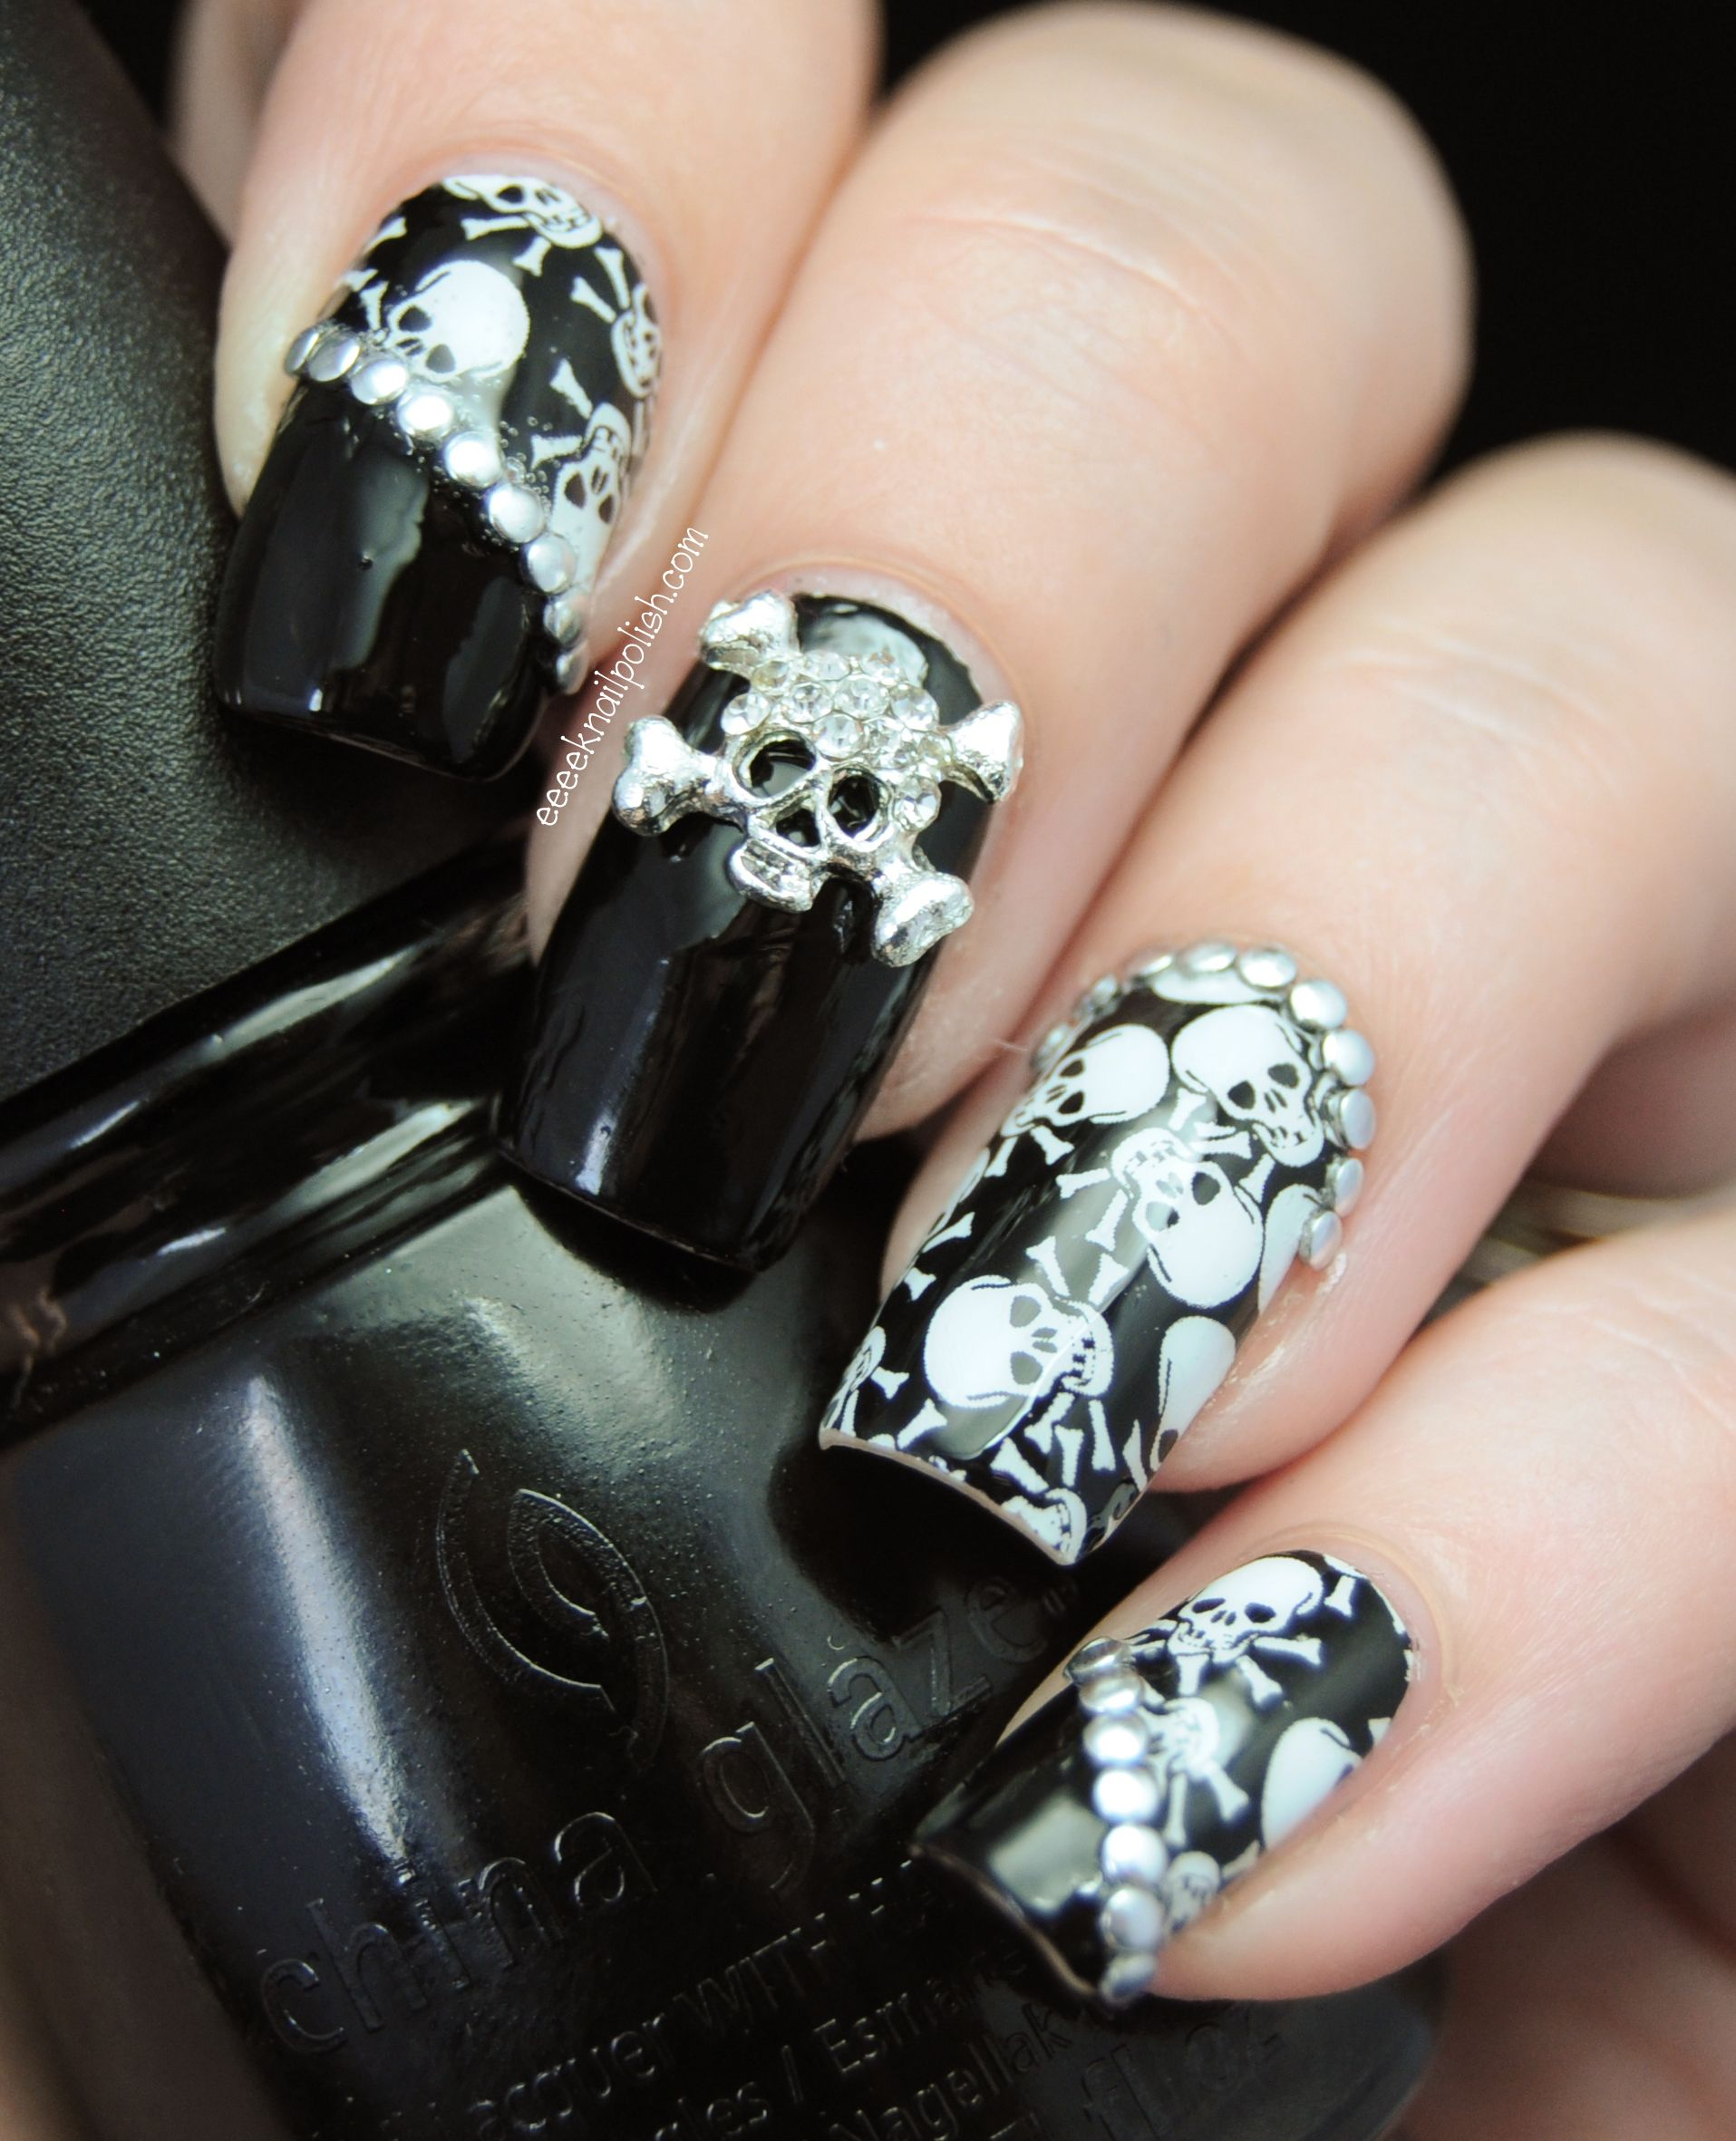 For more amazing gothic nail designs follow our vintage goth board for more amazing gothic nail designs follow our vintage goth board http prinsesfo Images